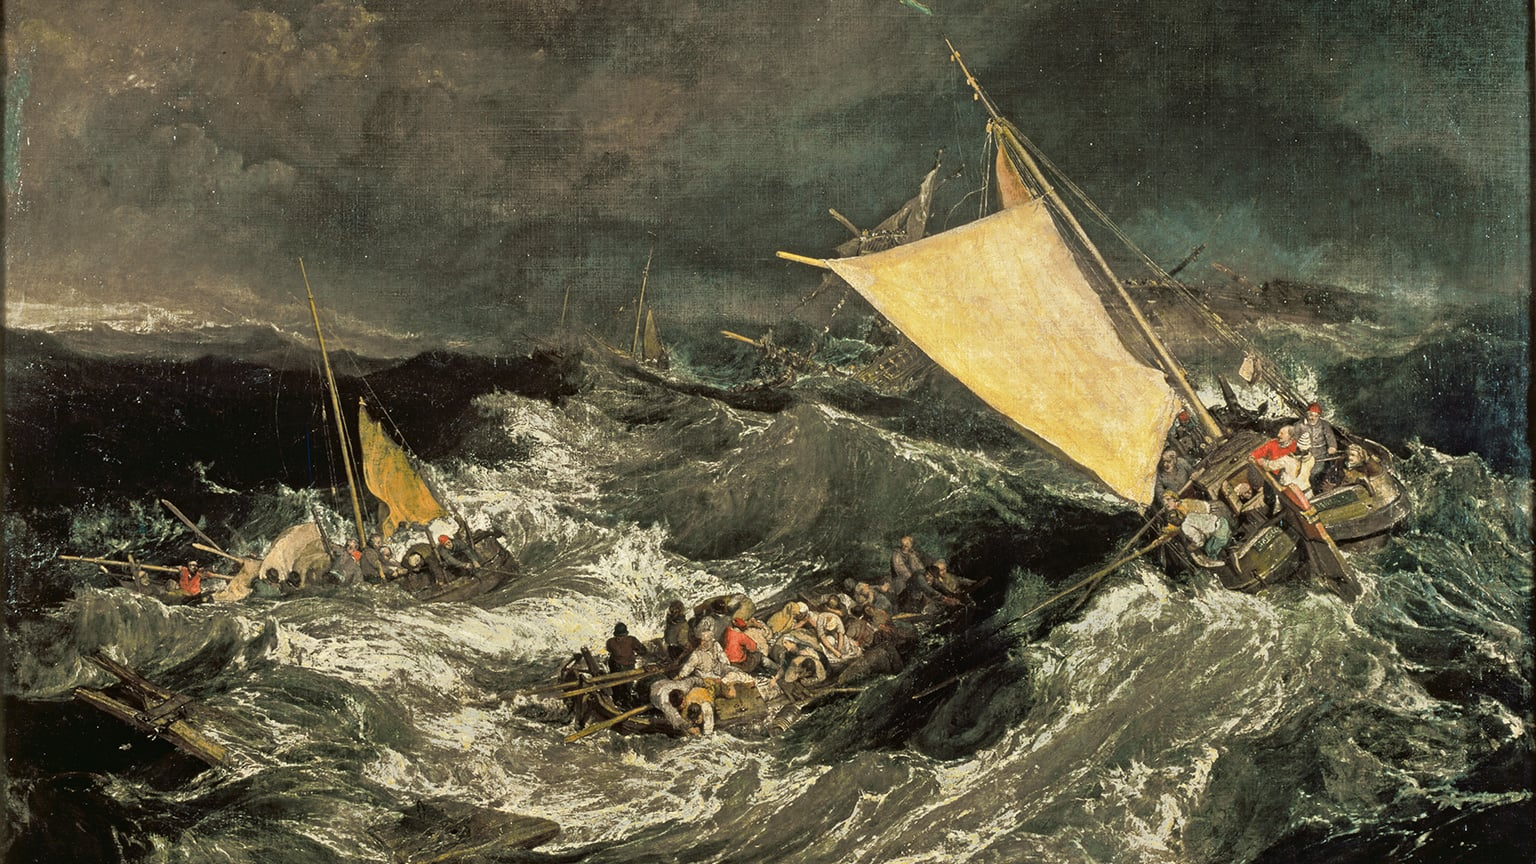 JMW Turner, The Shipwreck, exhibited at Turner's gallery in 1805